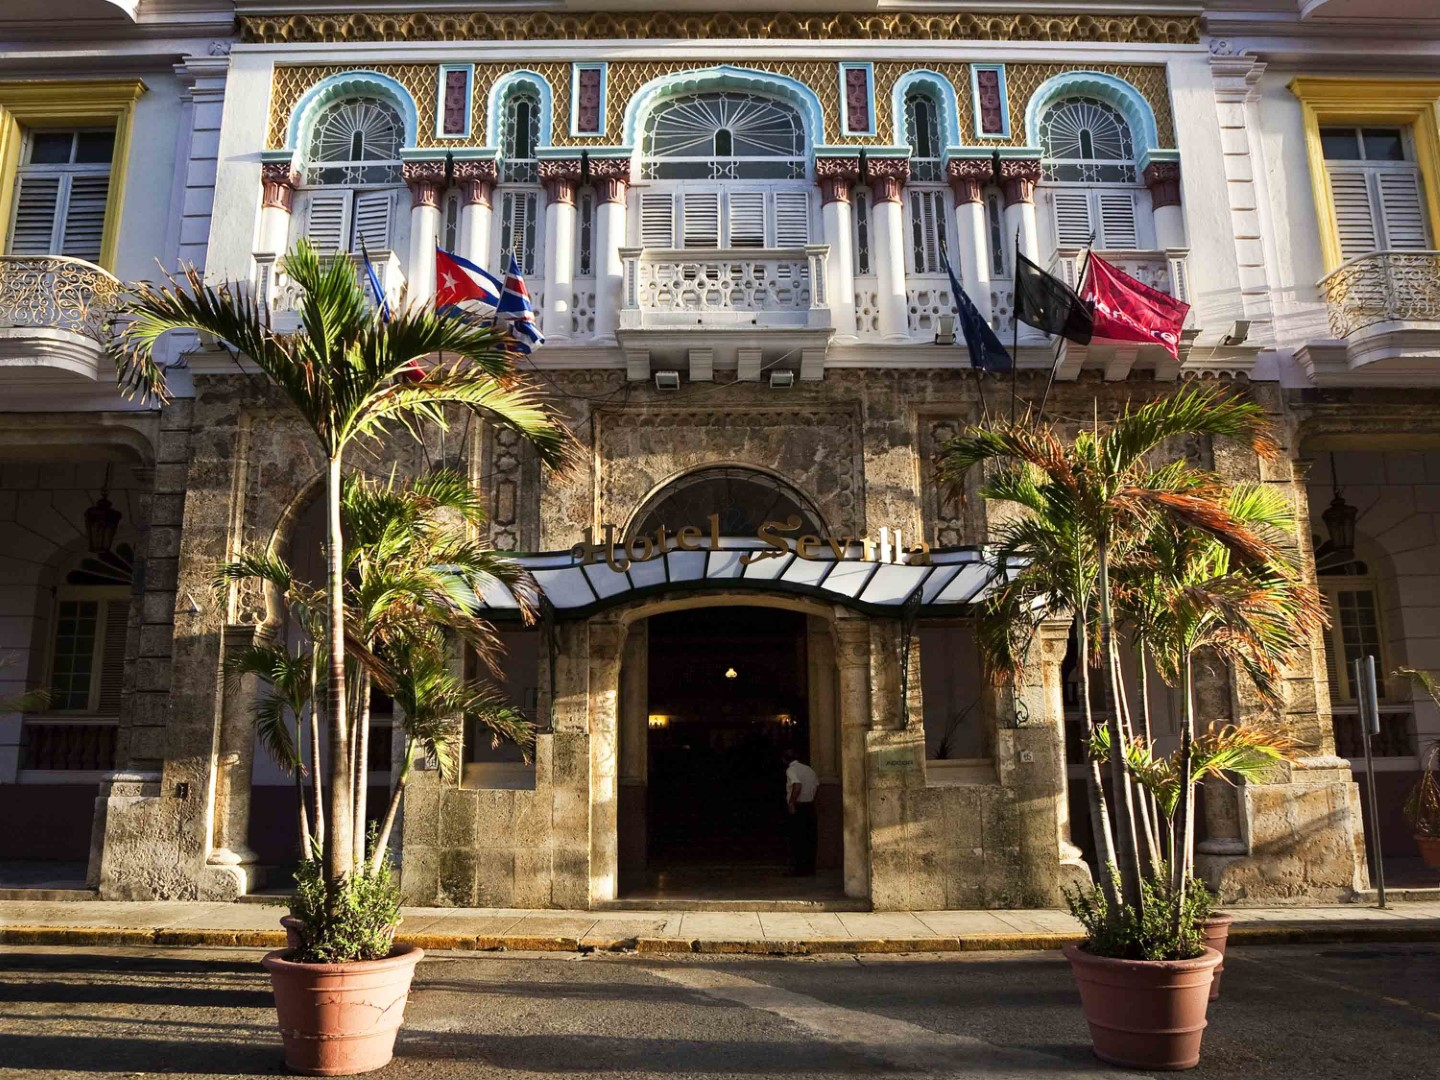 Main entrance to the Hotel Sevilla in Havana, Cuba